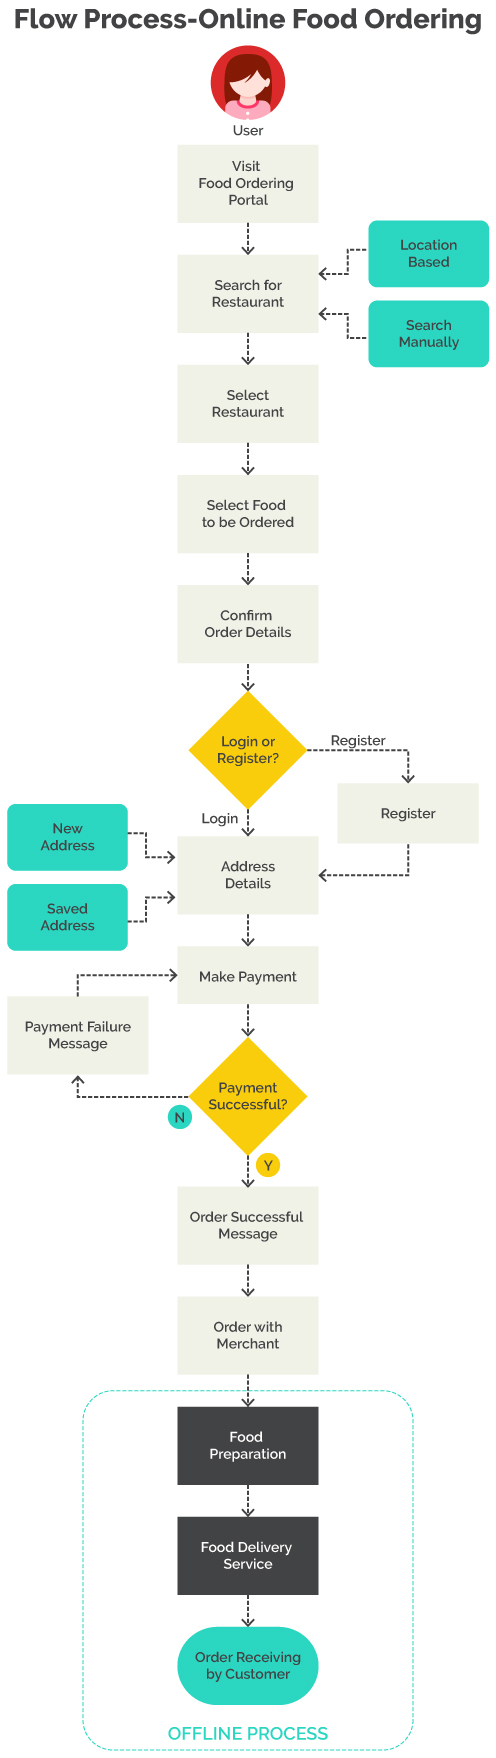 Process Flow of Online Food Ordering